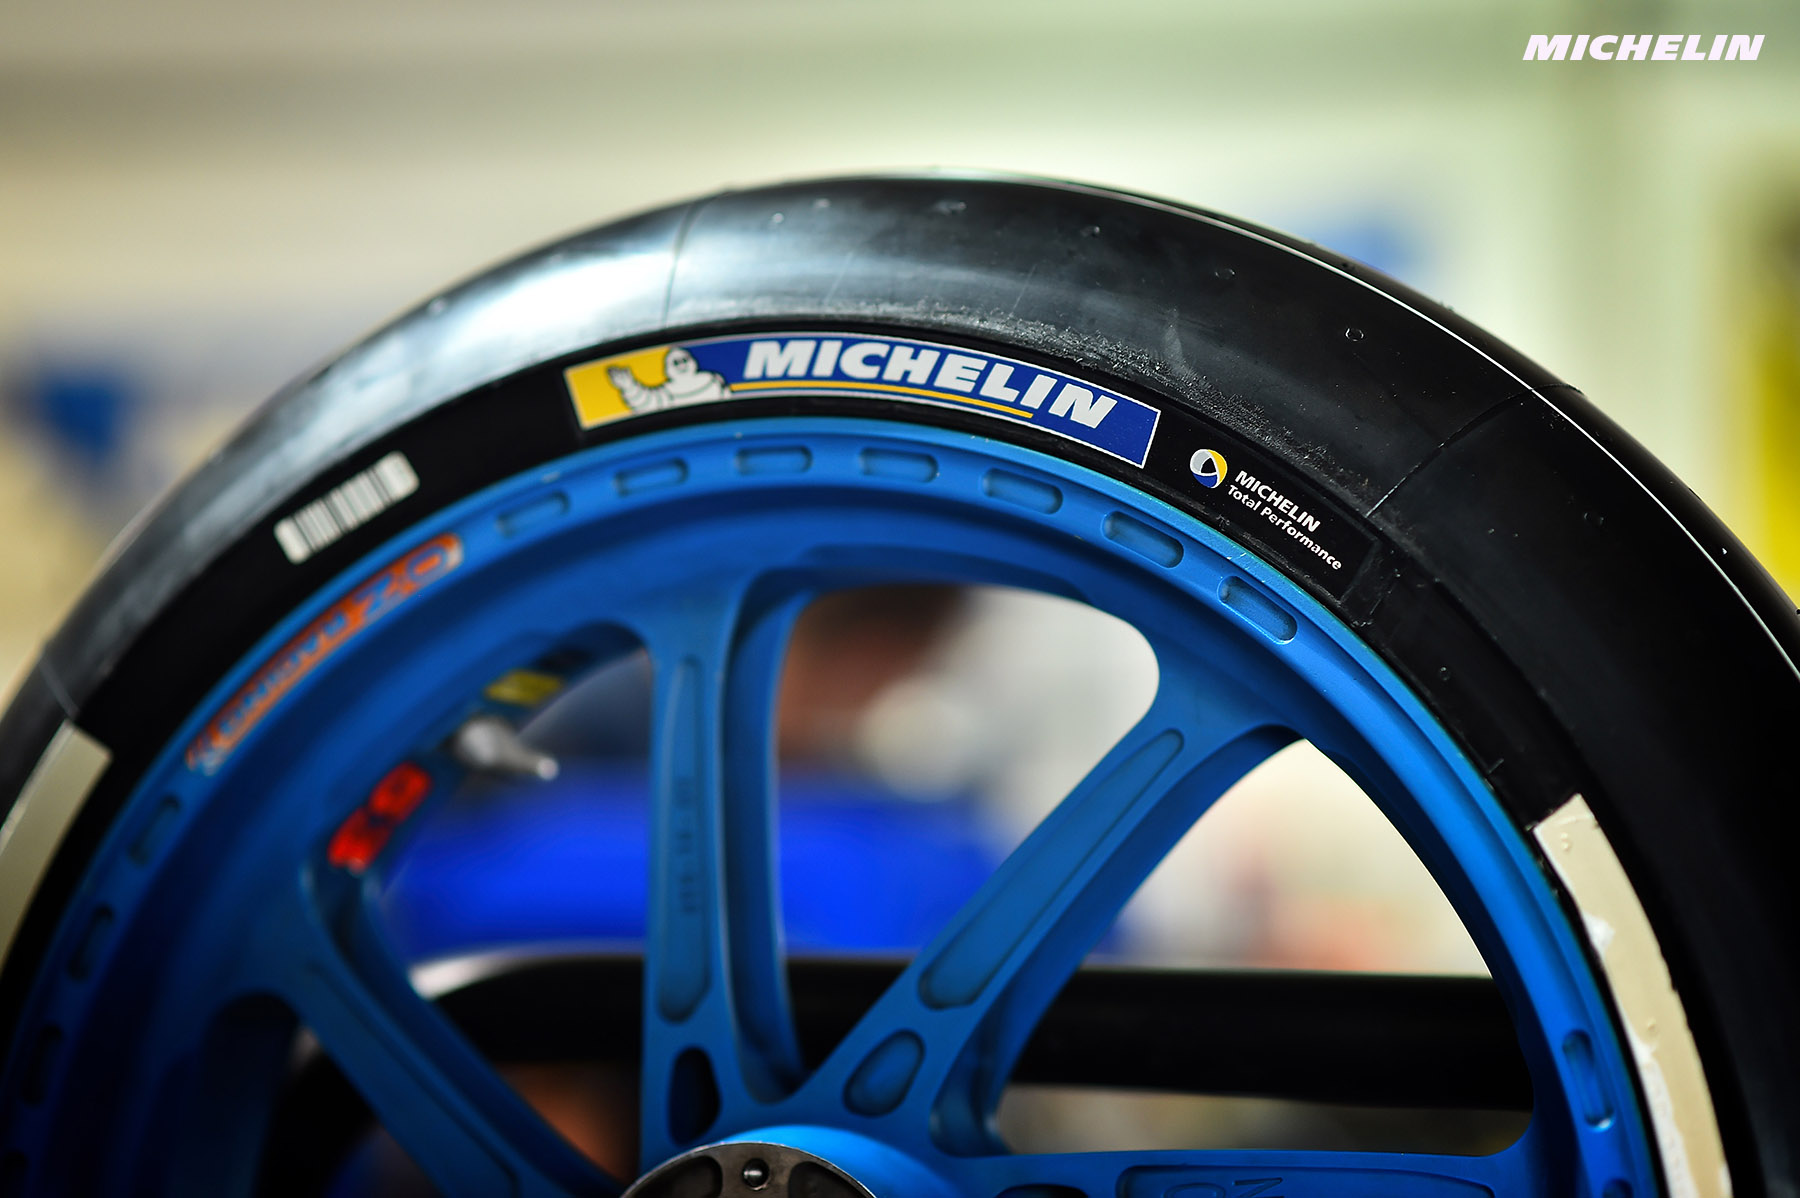 Michelin Named Official Motogp Tyre Supplier Until 2023 News Michelin Motorsport